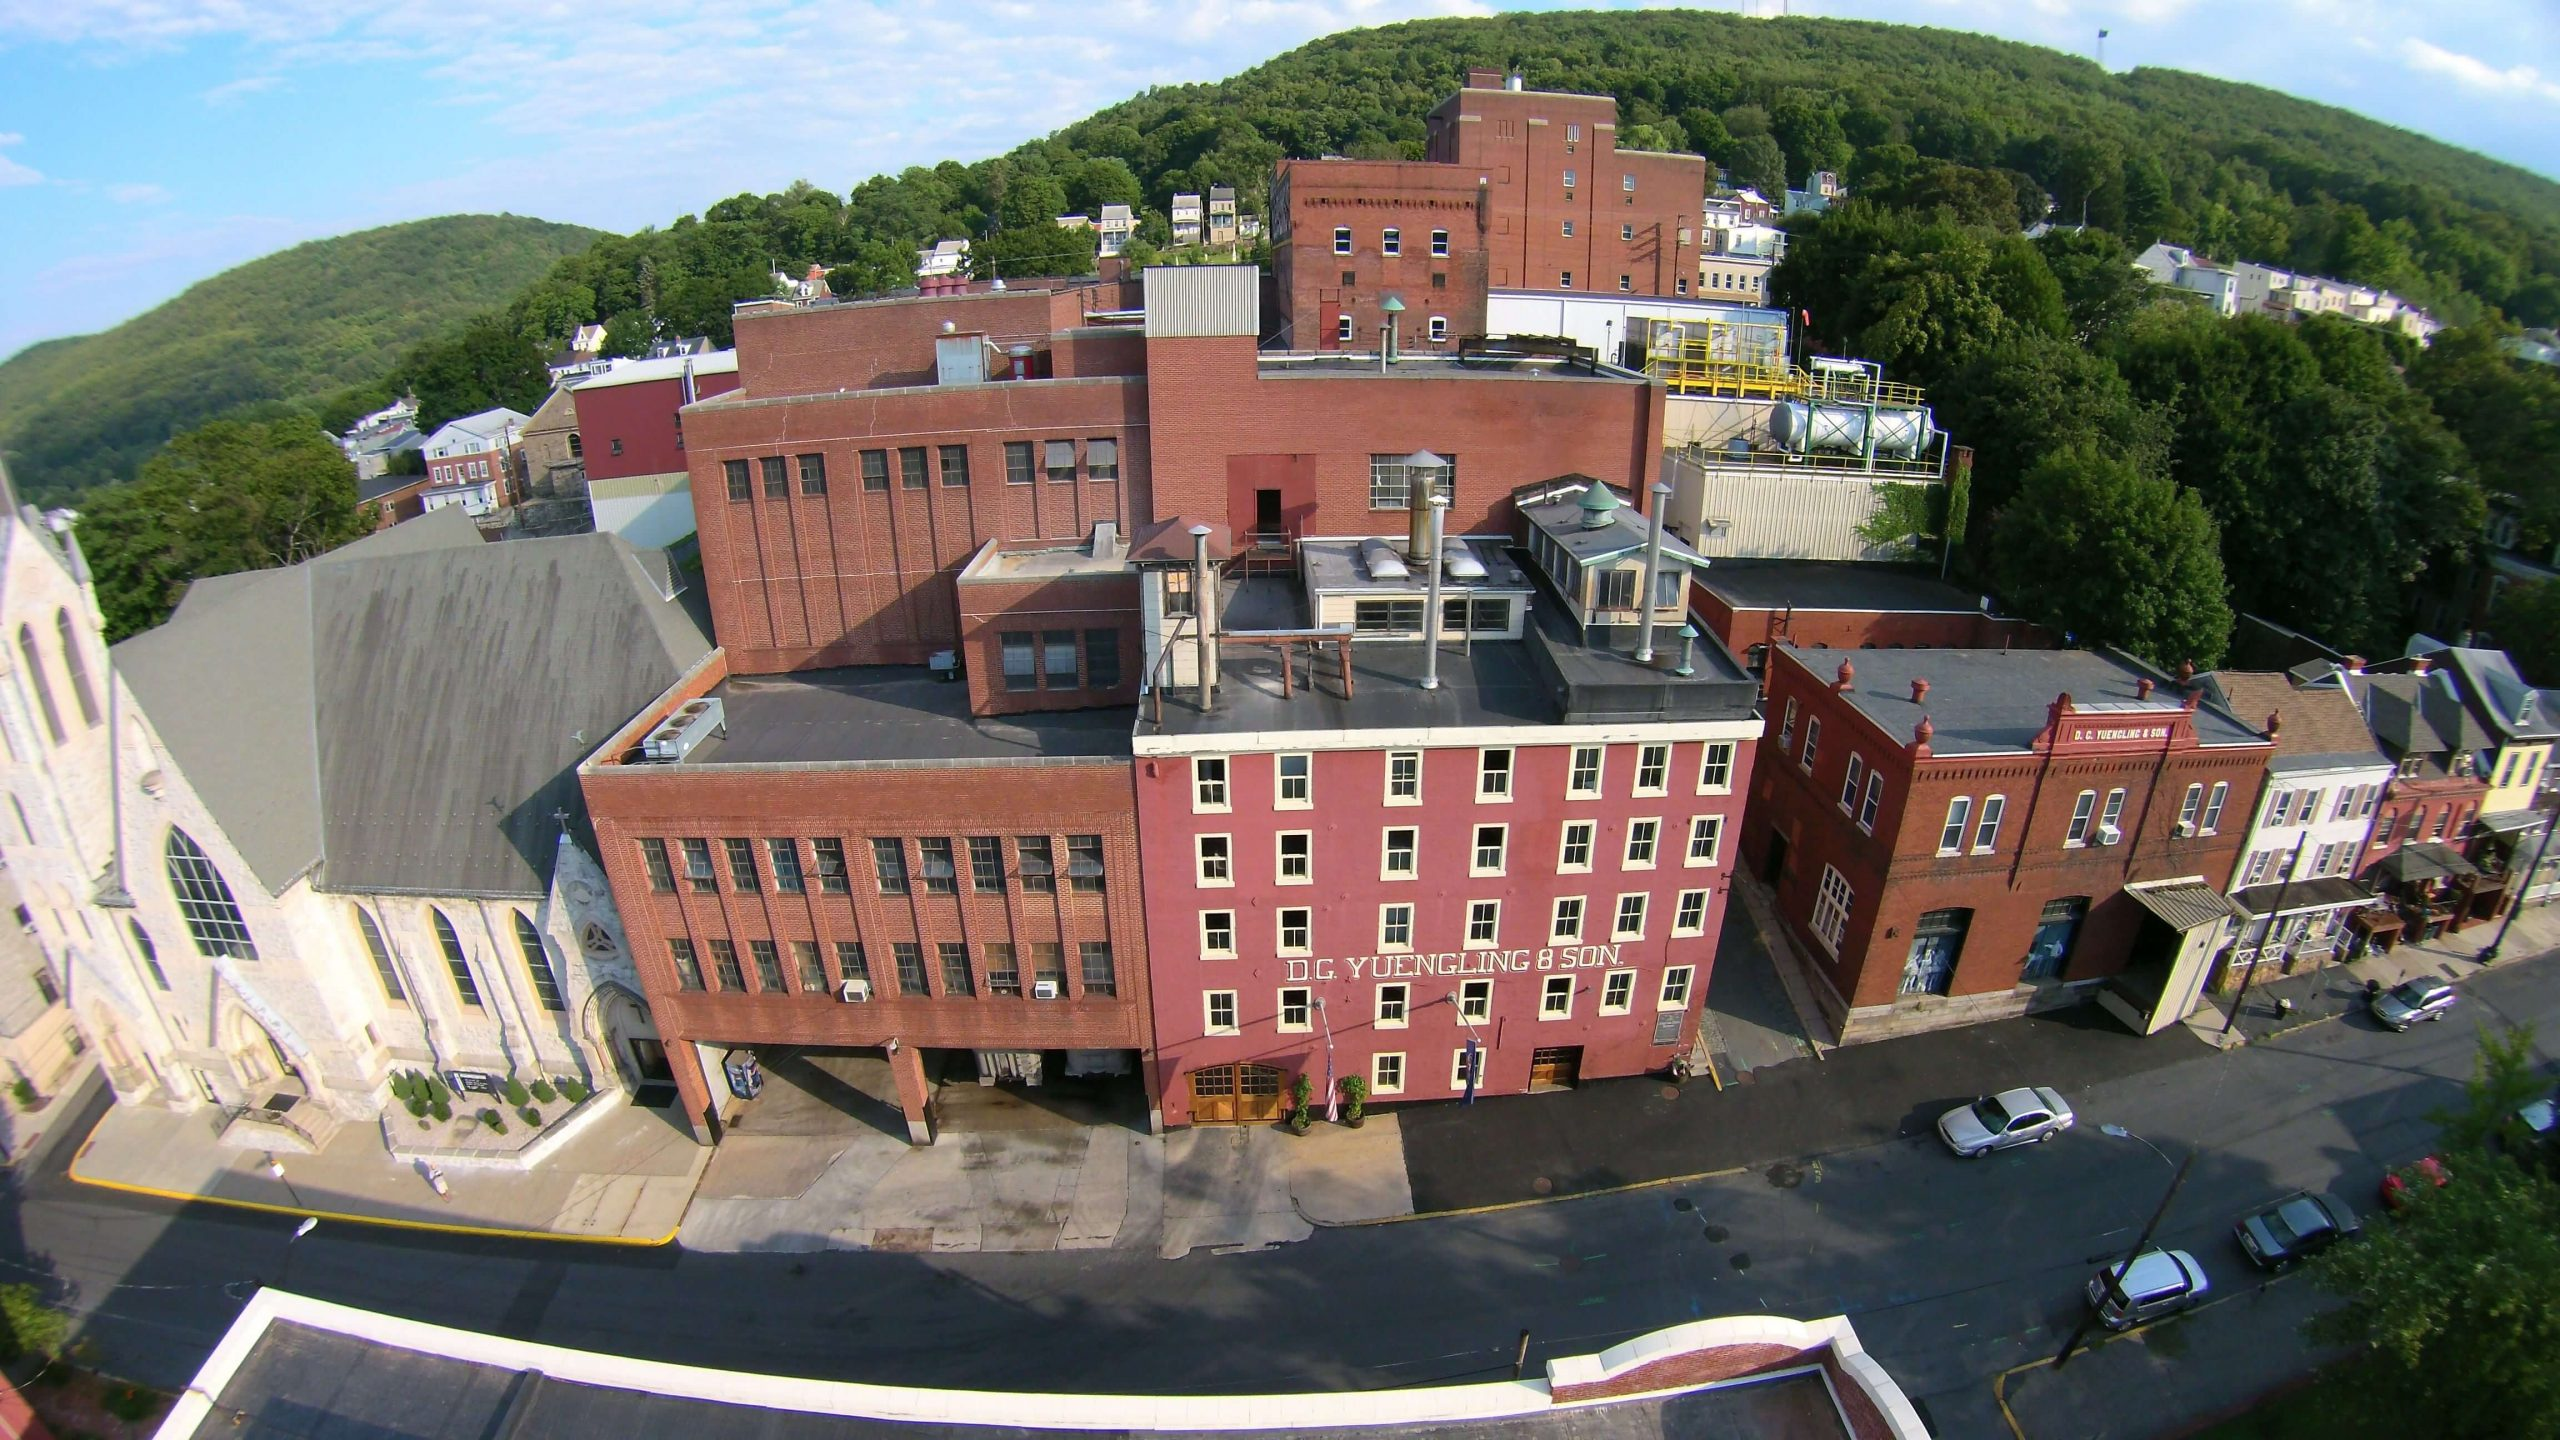 Above the D. G. Yuengling & Son, Inc. brewery and headquarters in Pottsville, Pennsylvania